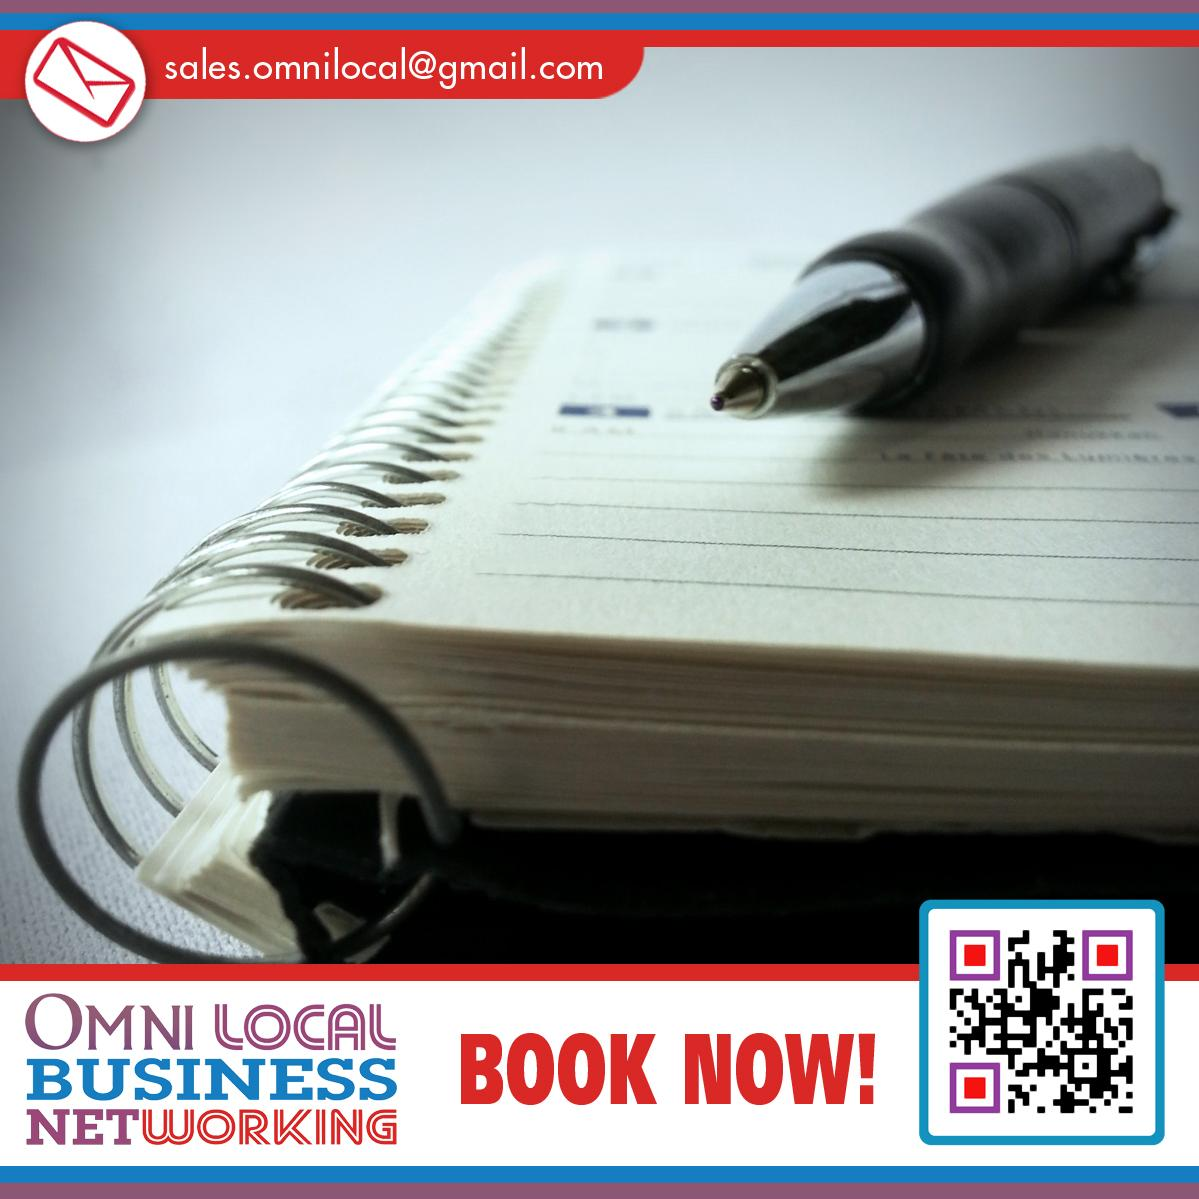 ONLINE BUSINESS NETWORKING with a GUARANTEED closed 1-2-1 meeting! Omni Business Breakfast Networking Meeting - Bracknell